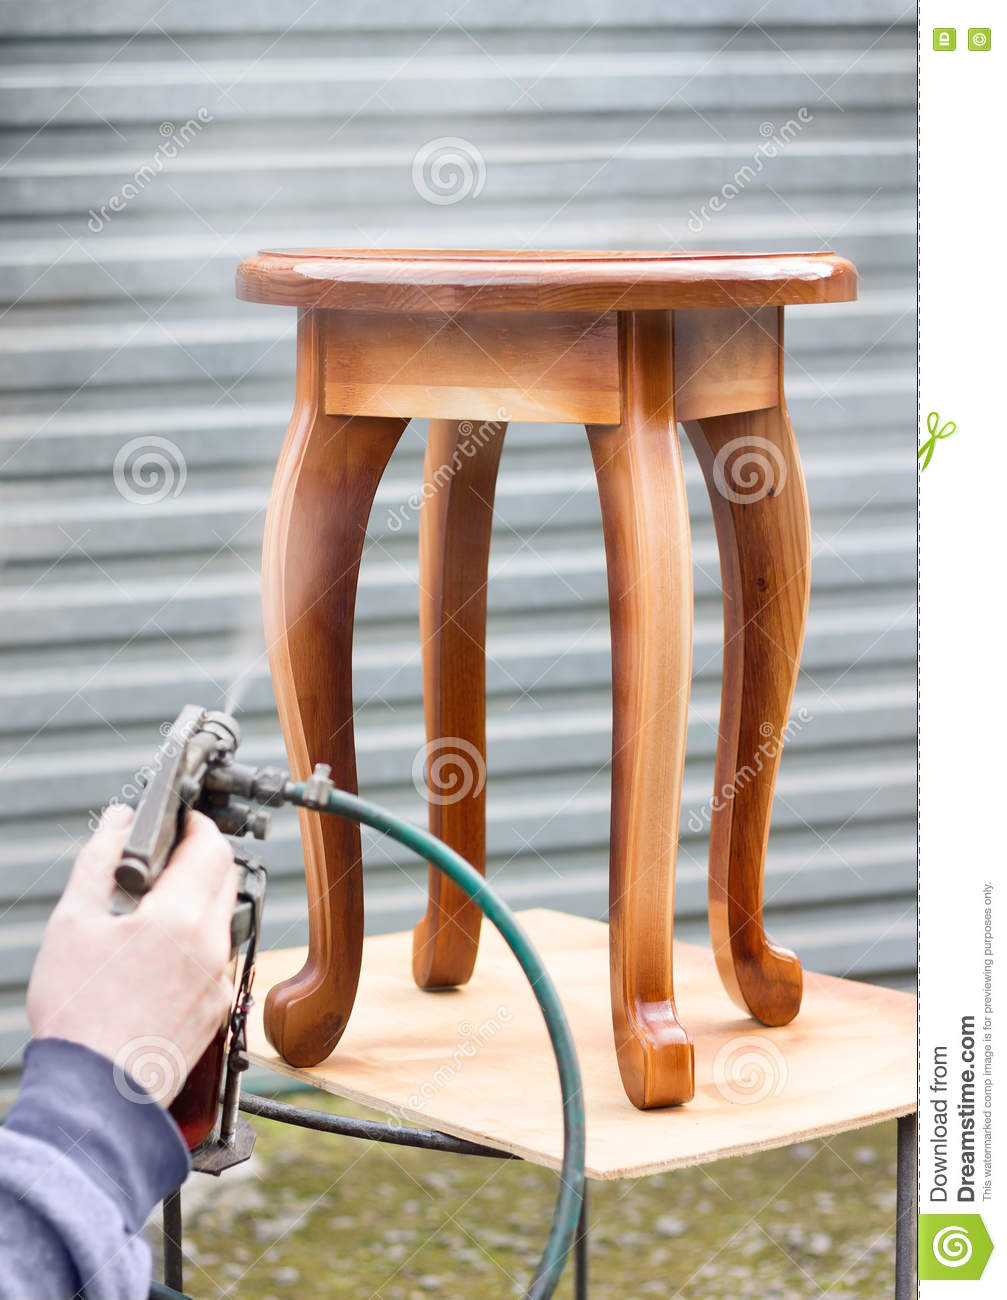 lacquer furniture paint lacquer furniture paint. Carpenter Is Covering Stool By Lacquer. Furniture, Paint. Lacquer Furniture Paint